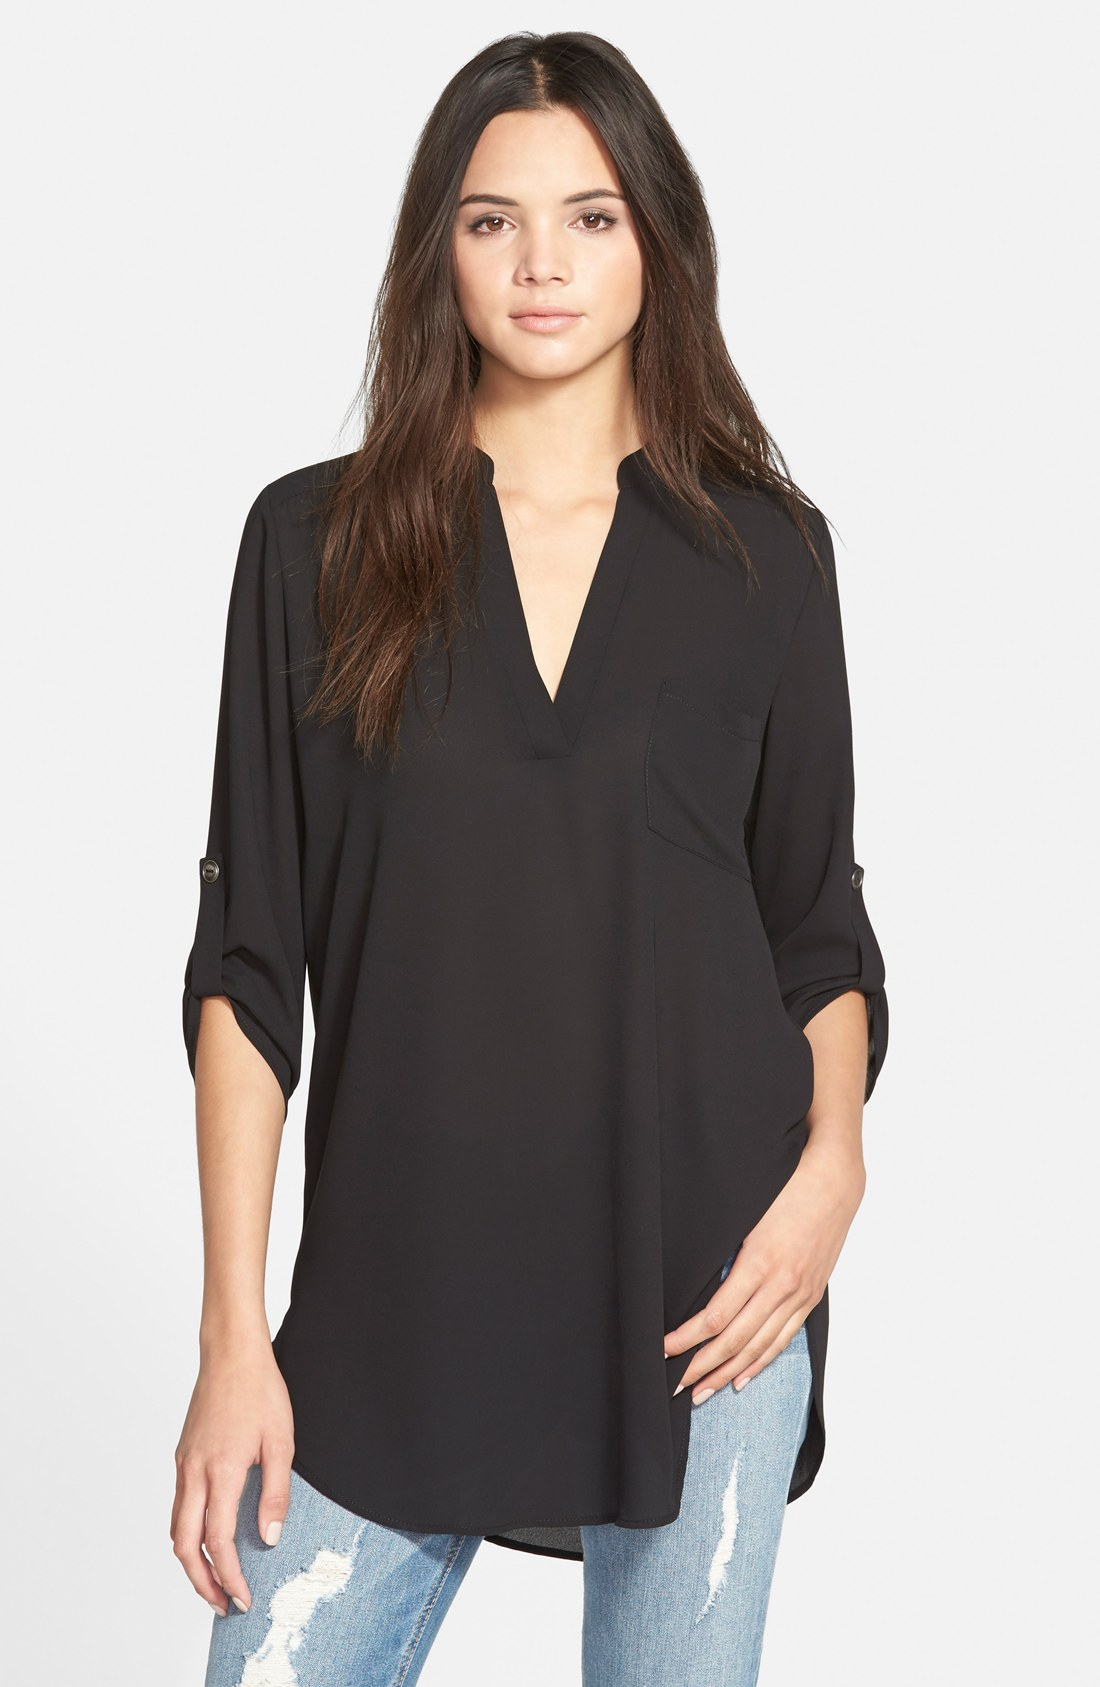 tunic top tunics tops for women | nordstrom cboewgw